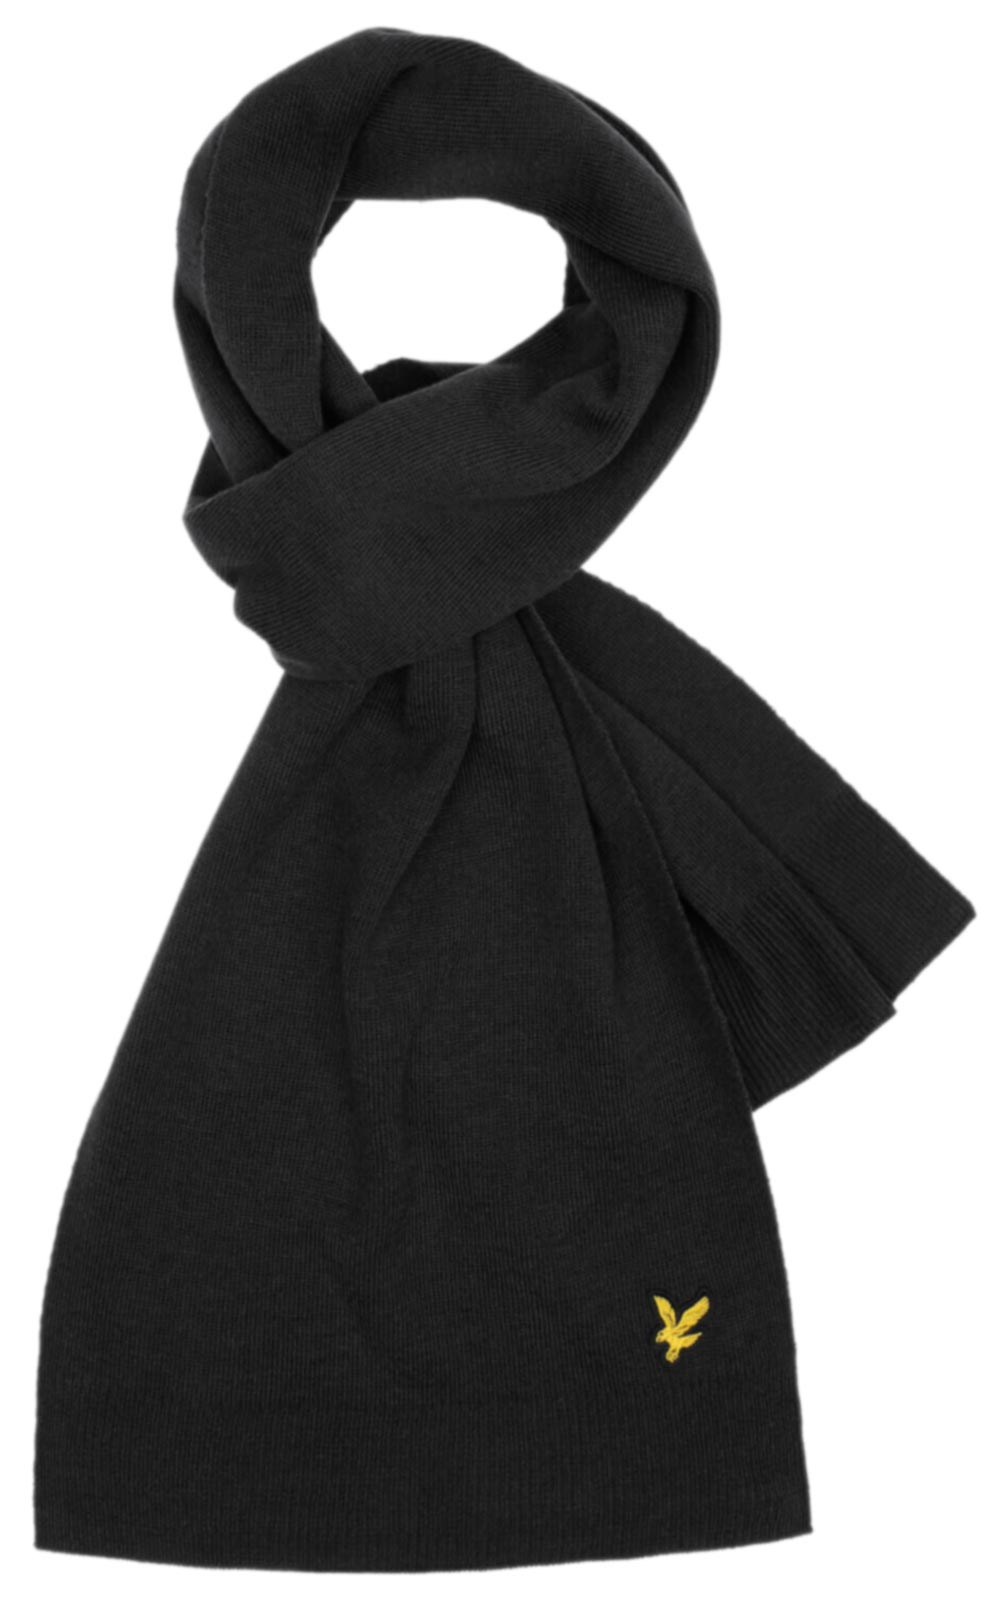 Lyle & Scott Scarf Black